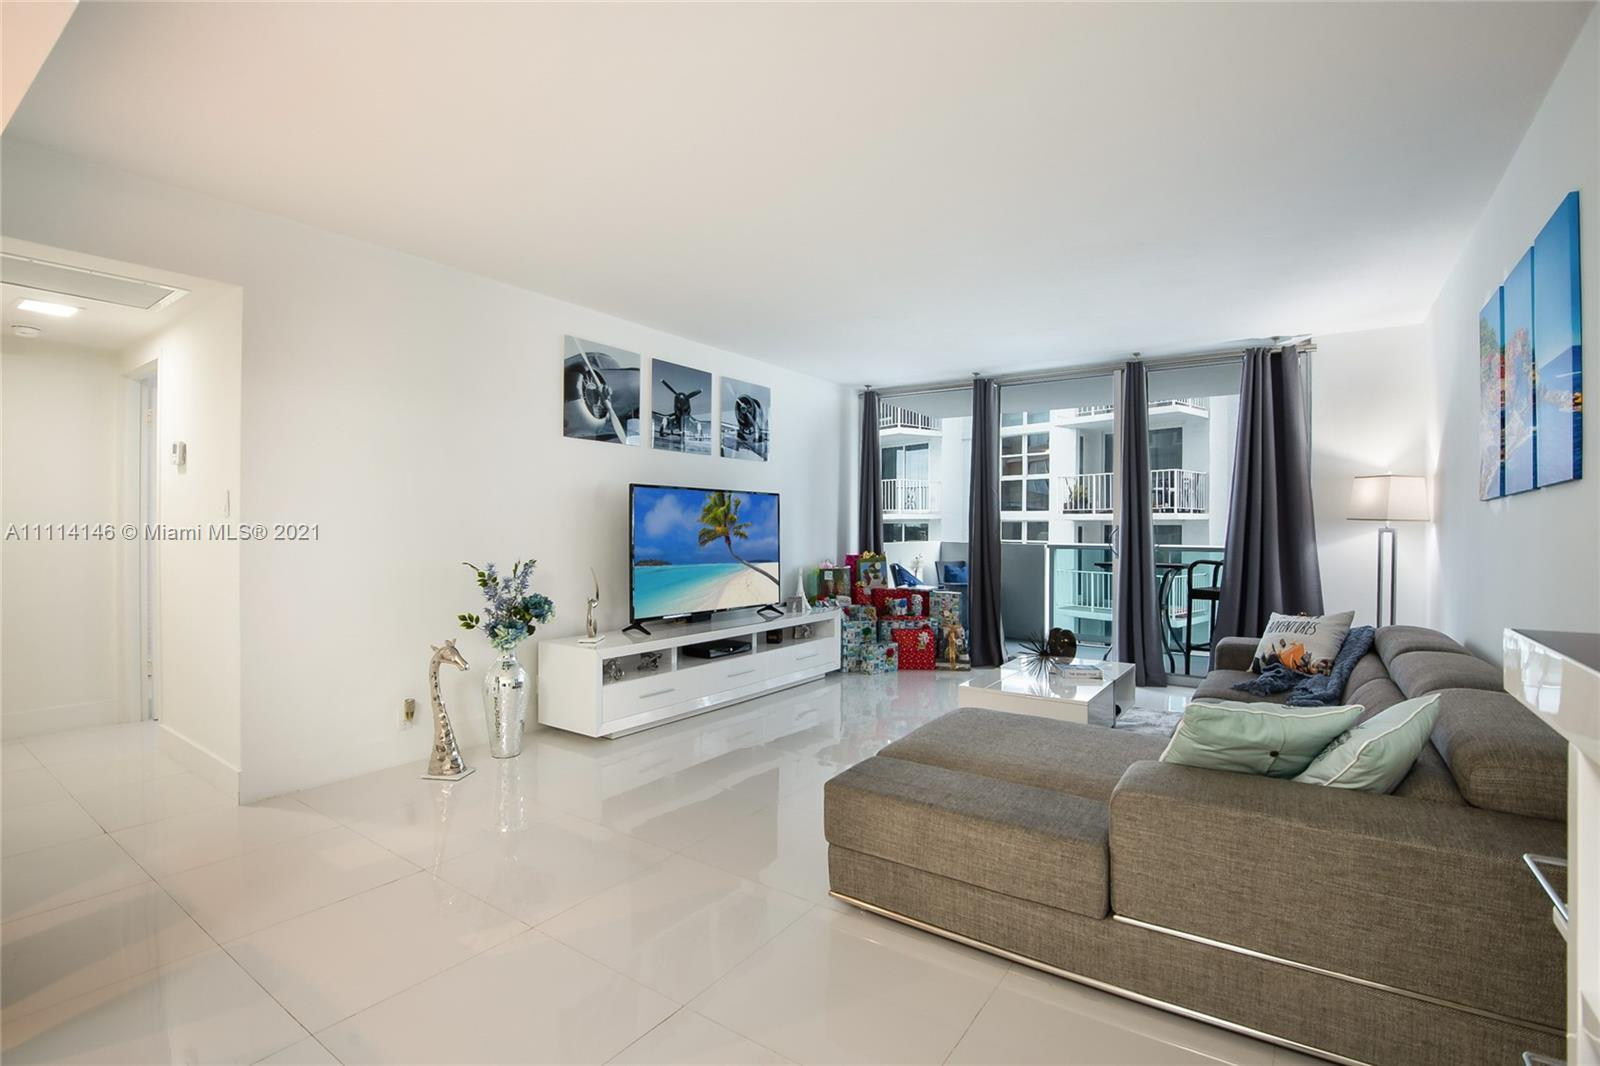 TOTALLY REMODELED 1 BEDROOM AND 1 BATHROOM OVERLOOKING THE BAY. Full service building in South Beach